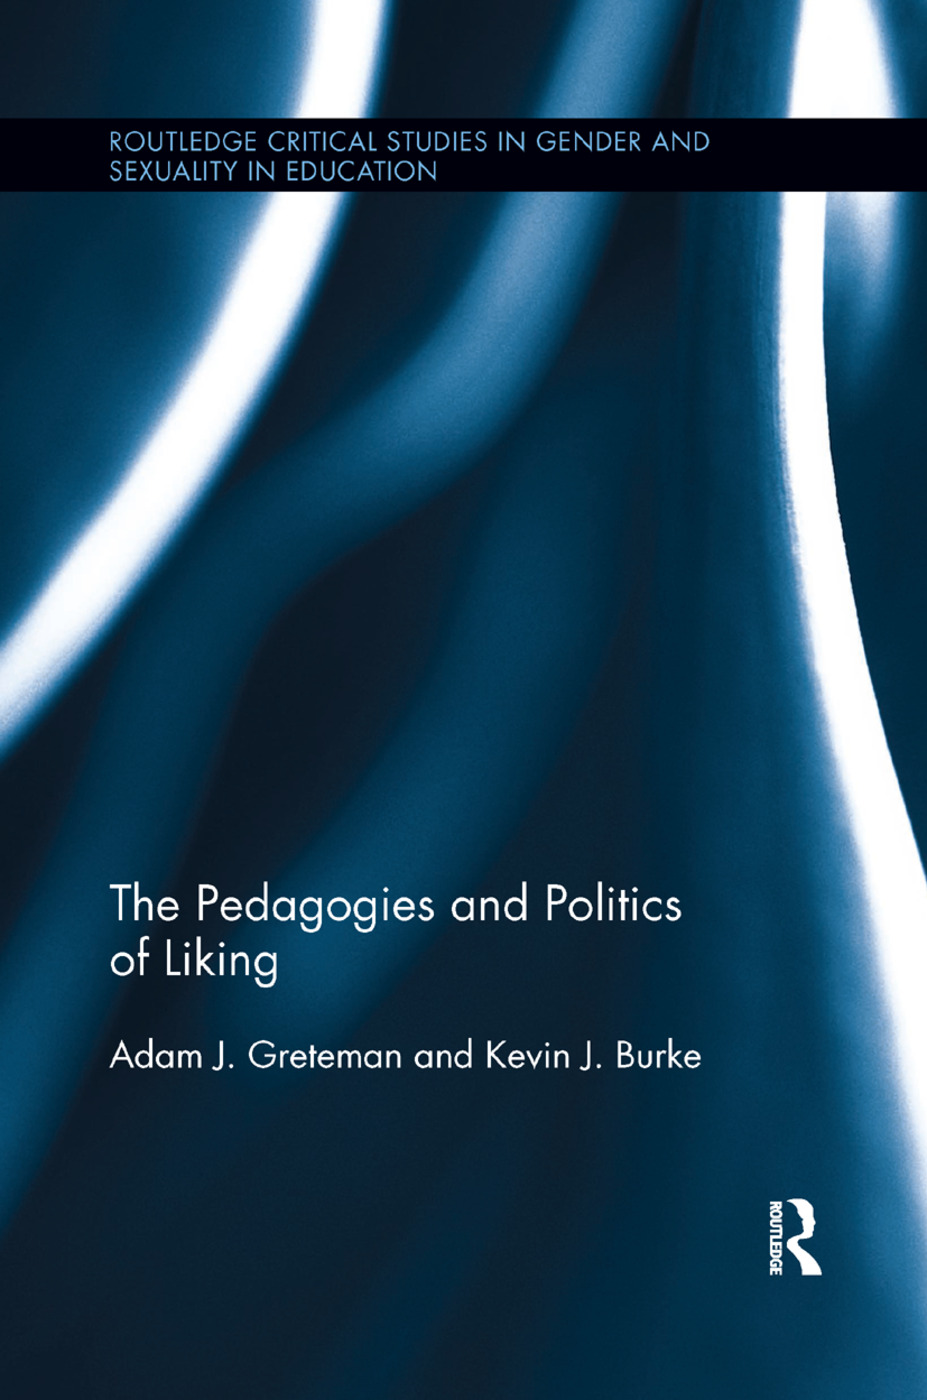 The Pedagogies and Politics of Liking book cover